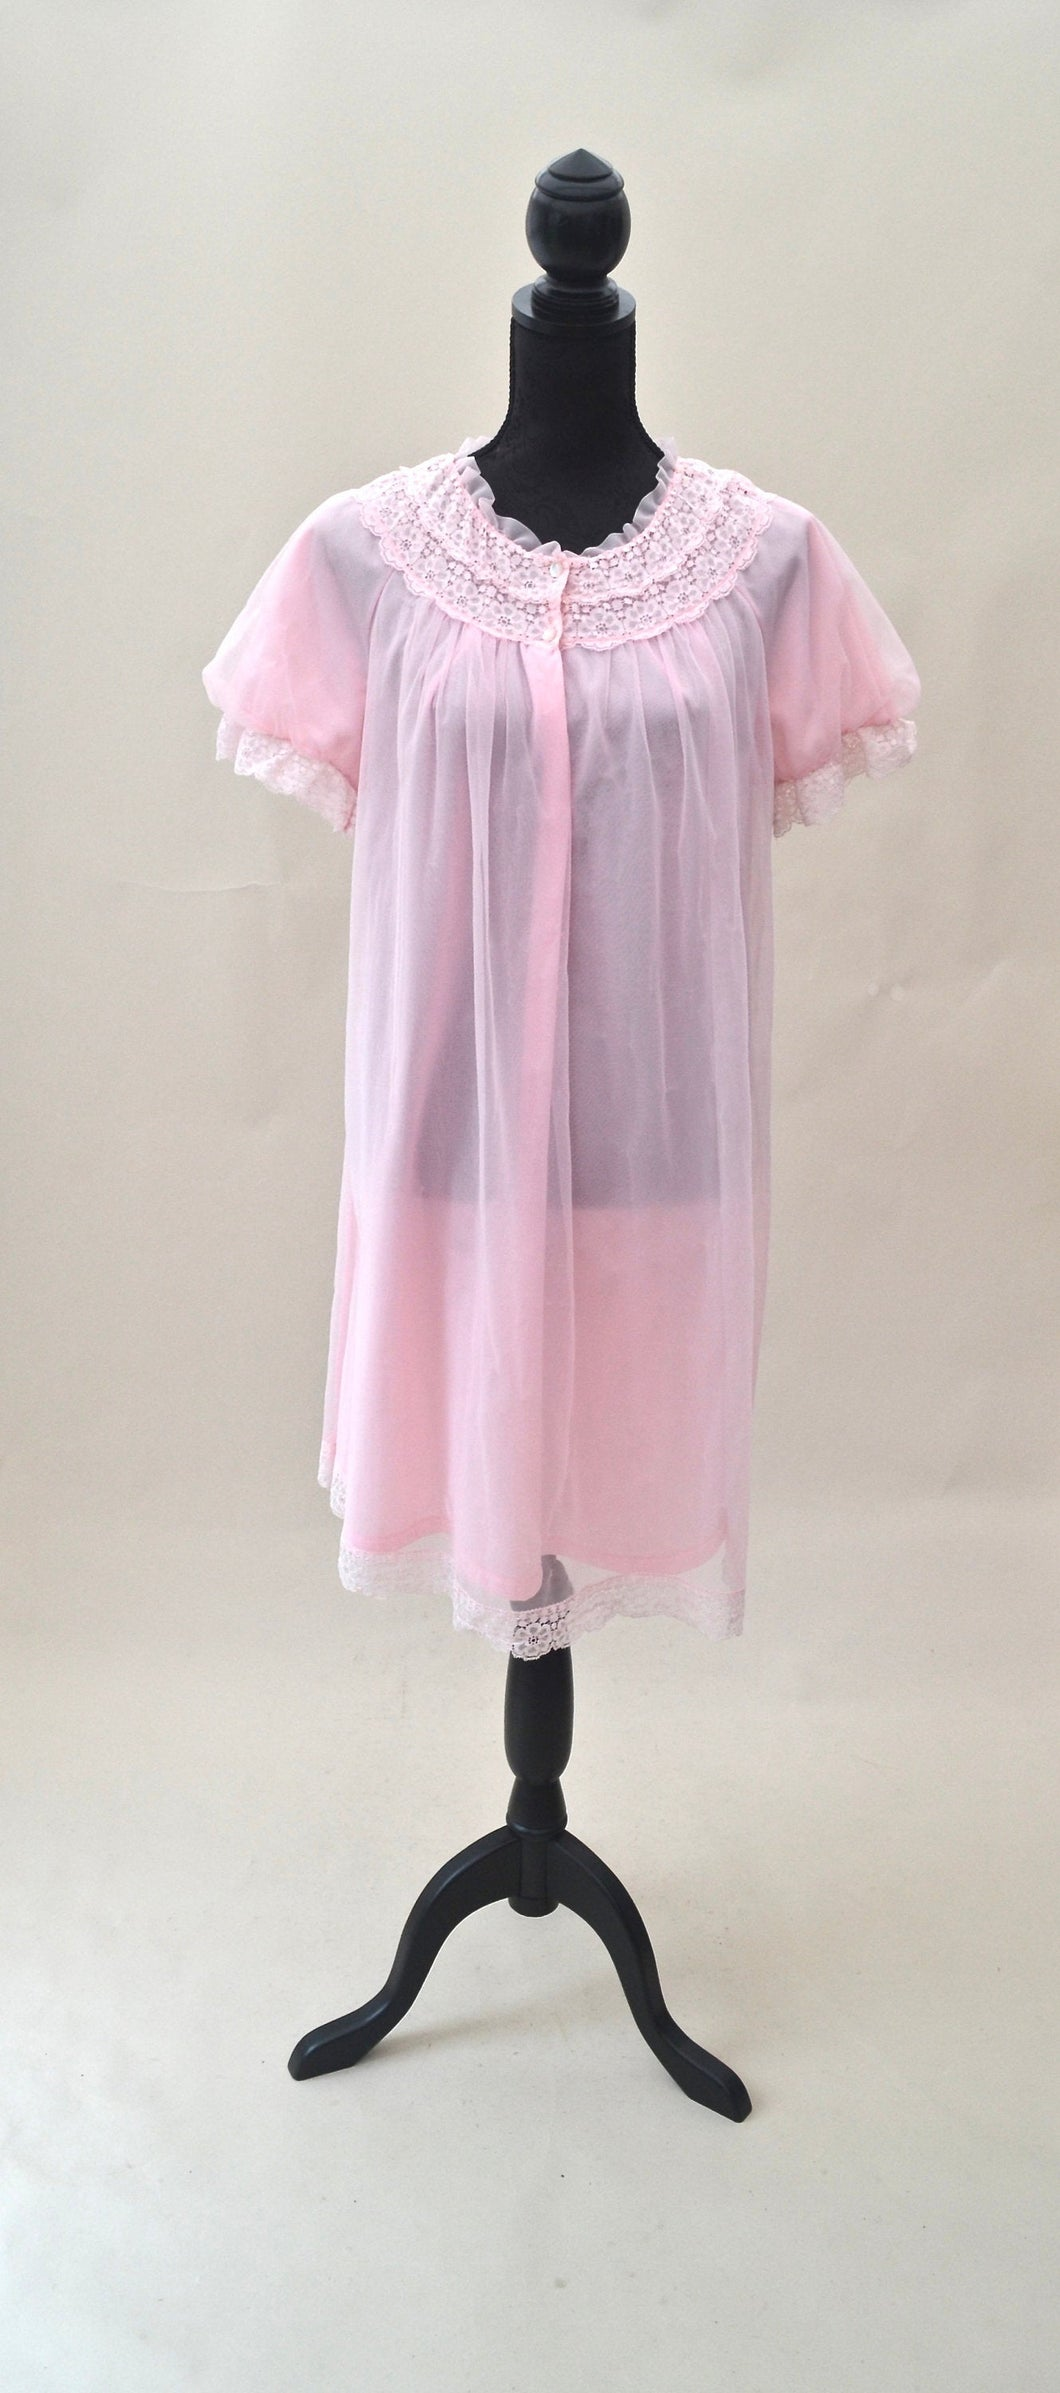 1970s Pink multi layered night dress | Frilly midi nightie | Est UK size 12/14